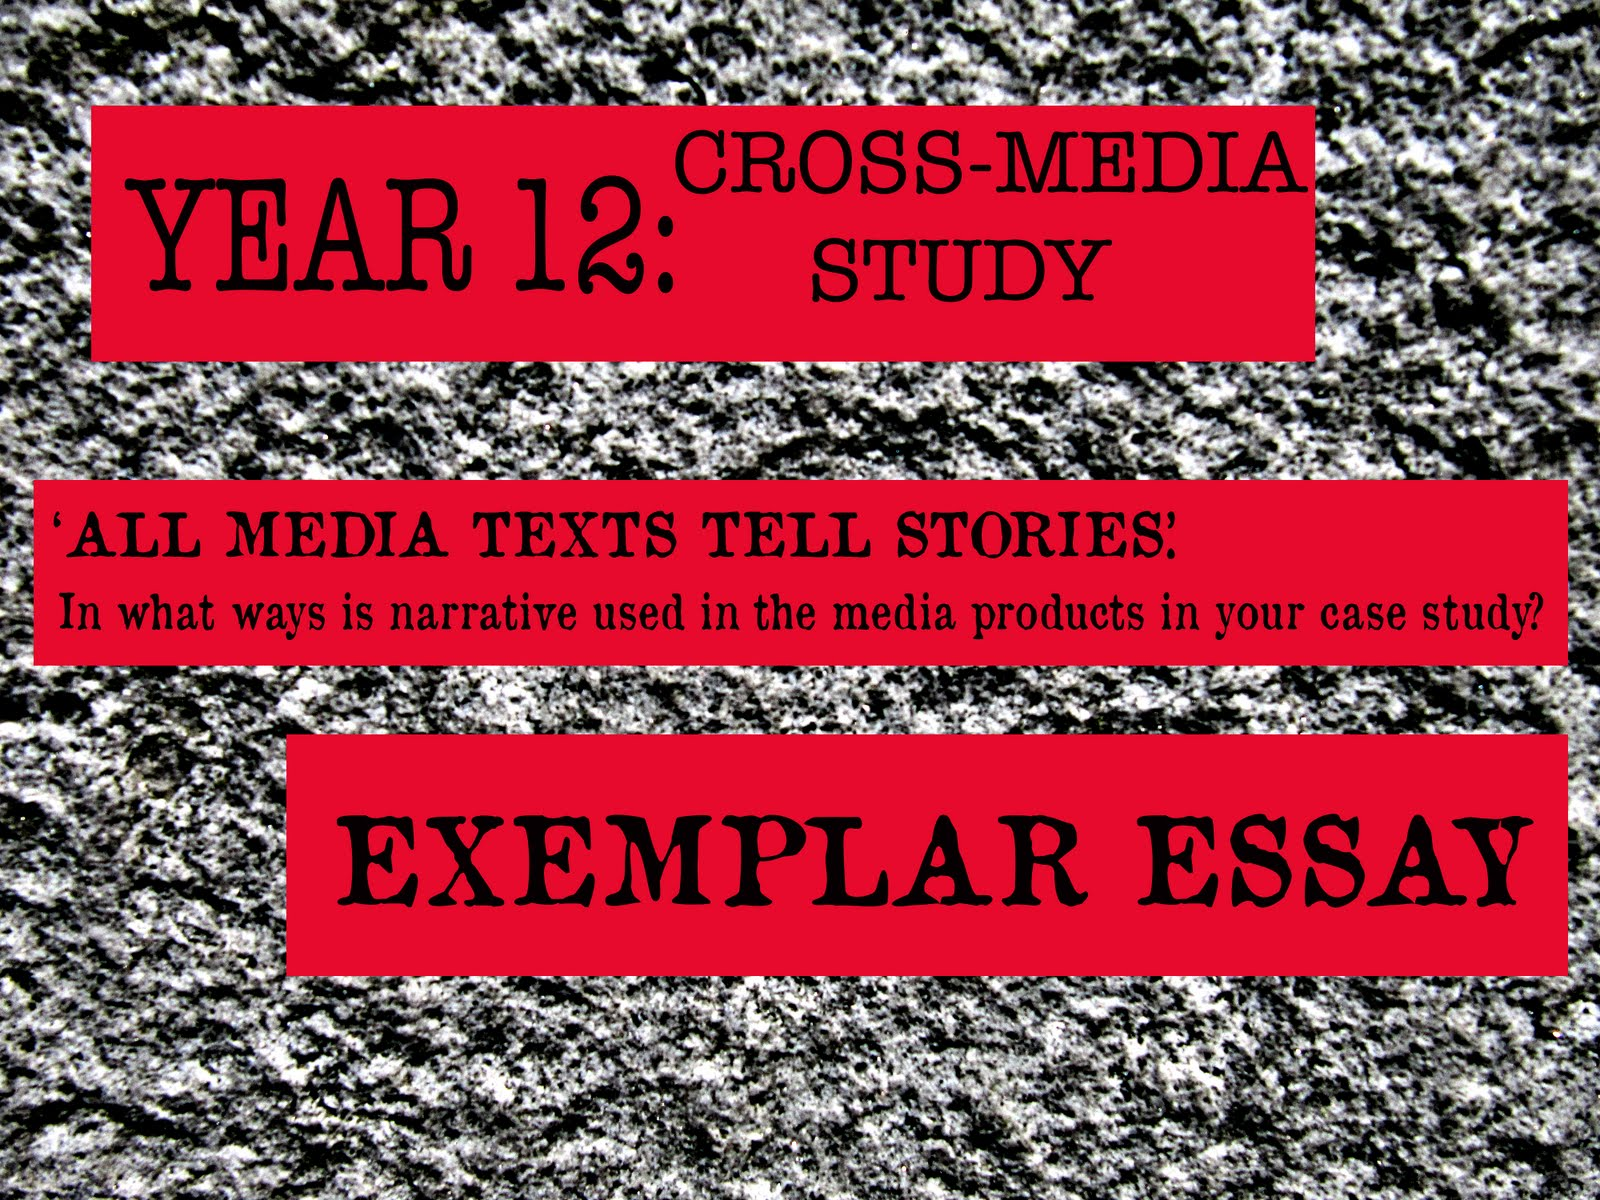 fishymedia resources for a2 as media studies year 12 cross year 12 cross media study exemplar essay